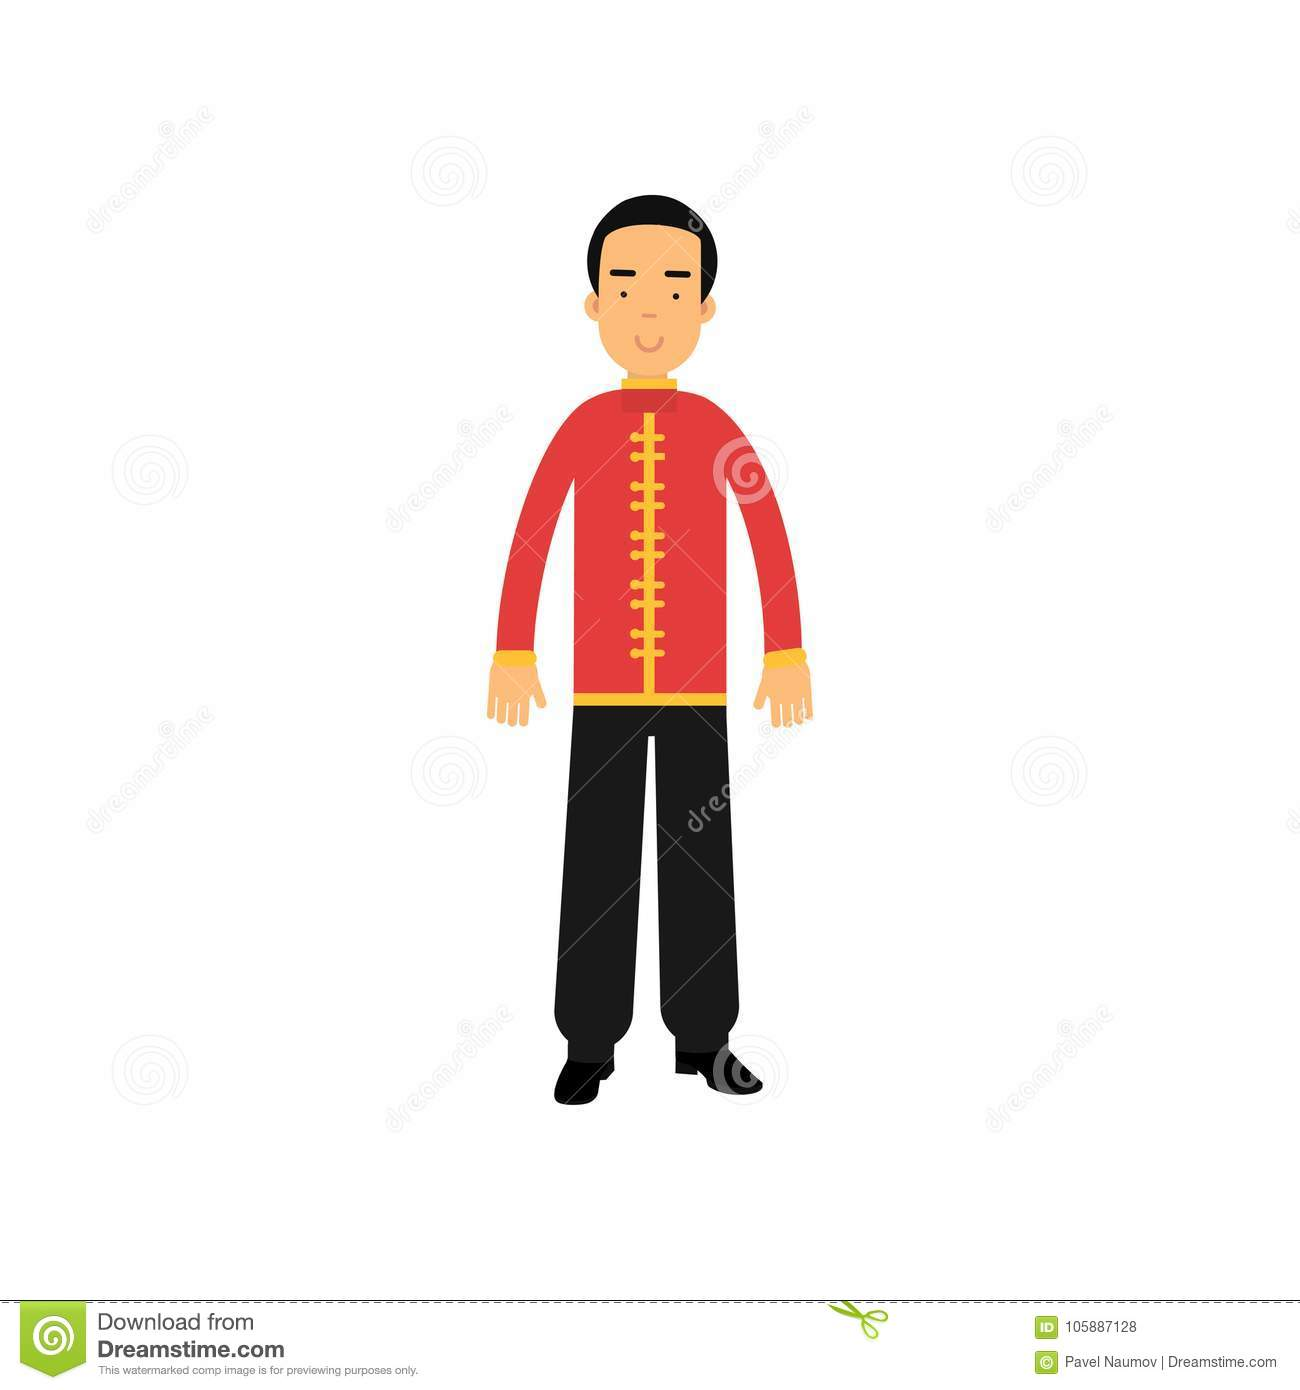 f5f91861c56 Cartoon male character in traditional chinese clothes. National costume  concept. Smiling man wearing red jacket tunic with yellow buttons and black  pants.